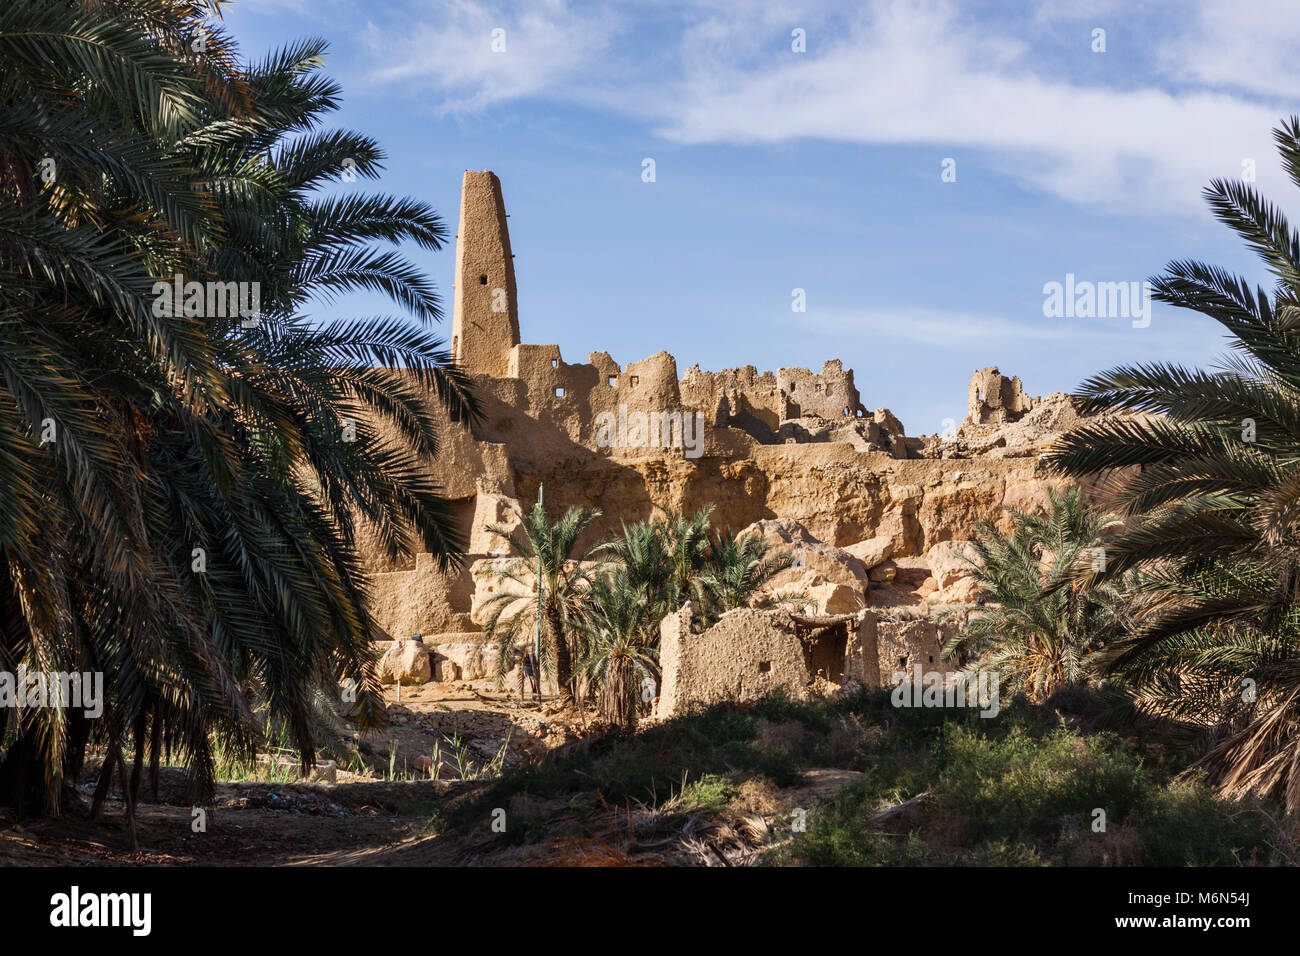 Remains of the Temple of the Oracle of Ammun and mosque at Aghurmi village. Siwa oasis, Egypt - Stock Image